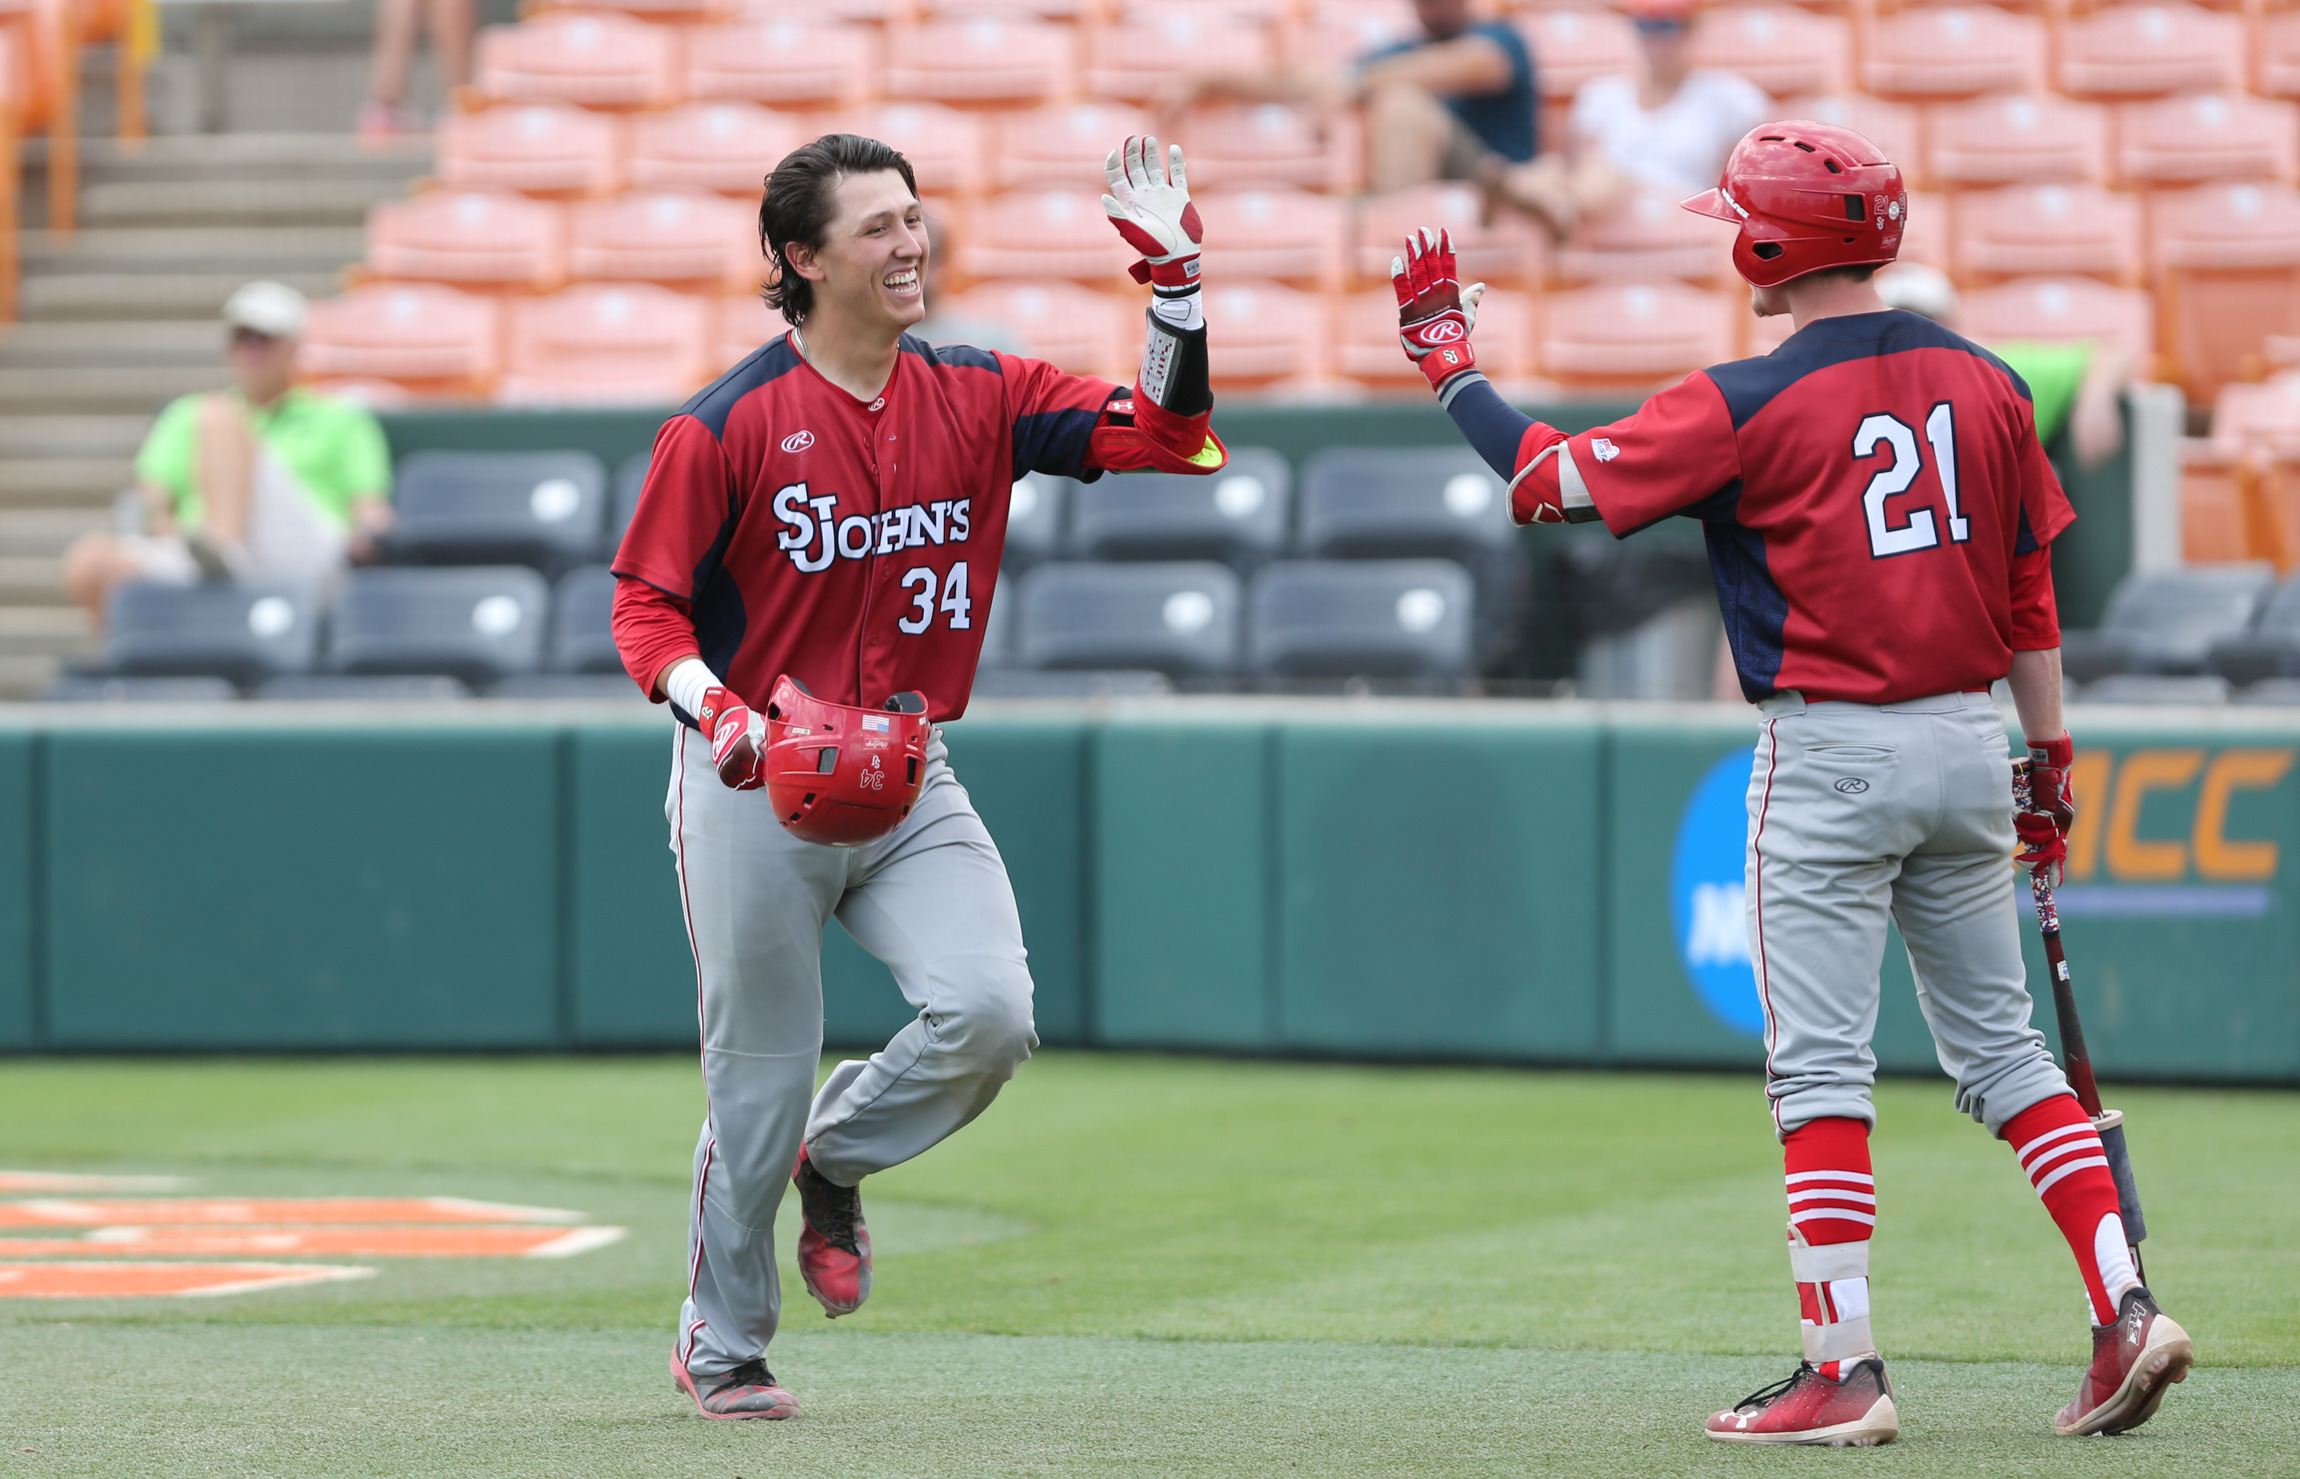 st. john's to host maryland for a saturday doubleheader - st. john's